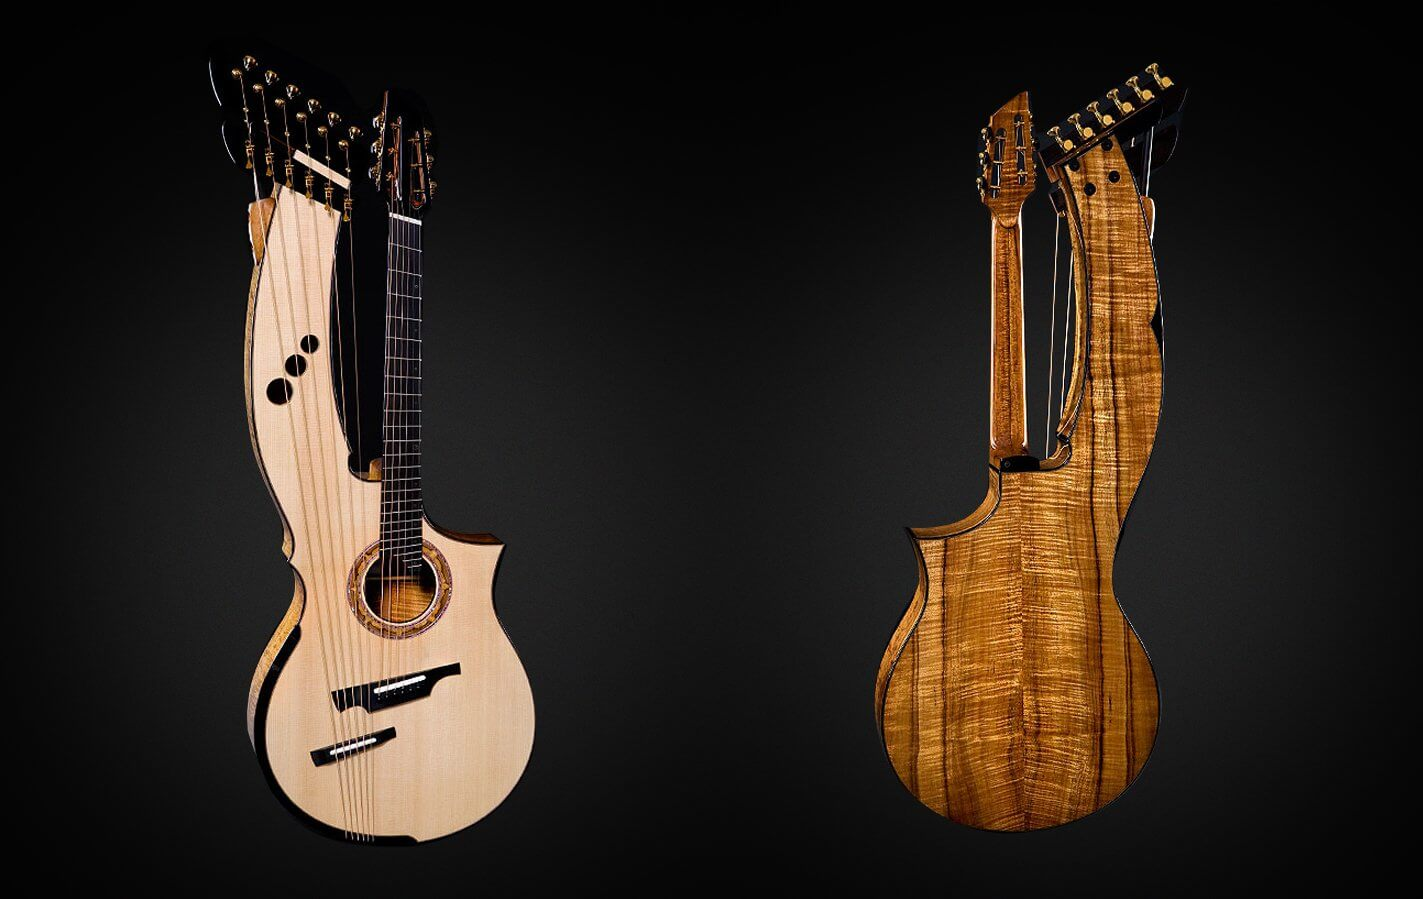 Greenfield Guitars | Fine handmade Acoustic Guitars Model HG, Harp Guitar, Koa, Lutz spruce, sub bass strings, fanned frets, sharping levers, laskin arm rest, dual bridge, low stress system, harp arm, slotted peghead, harp heads